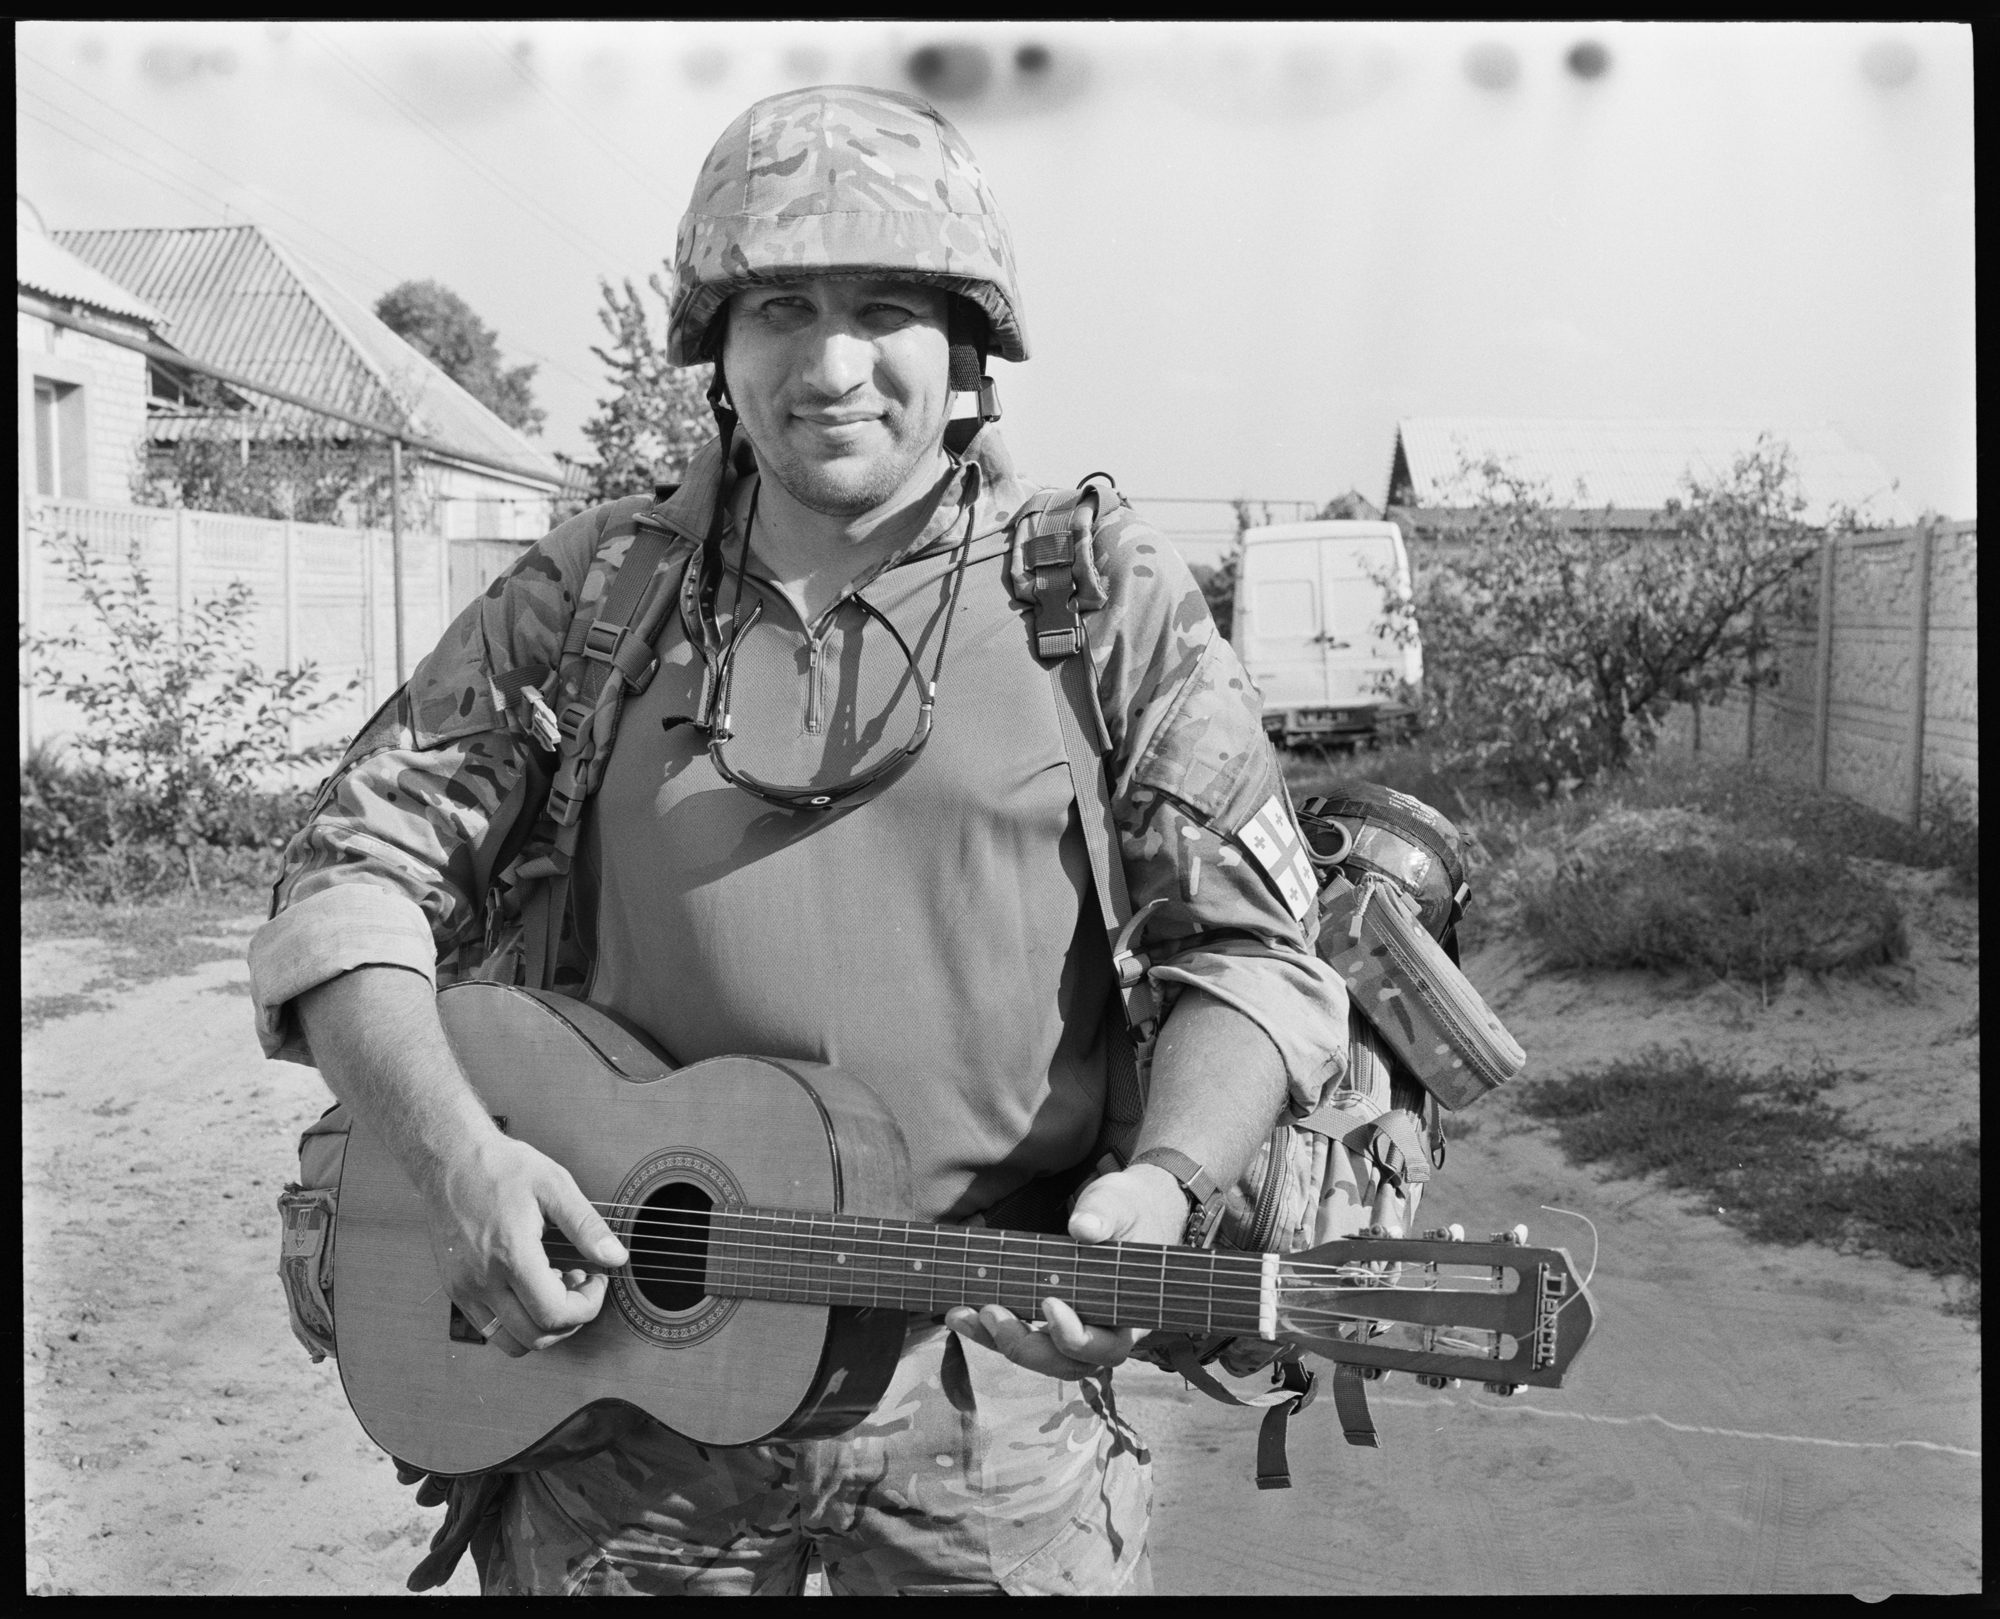 Soldier with guitar by Brett Hillyard on ILFORD black and white HP5+ Film